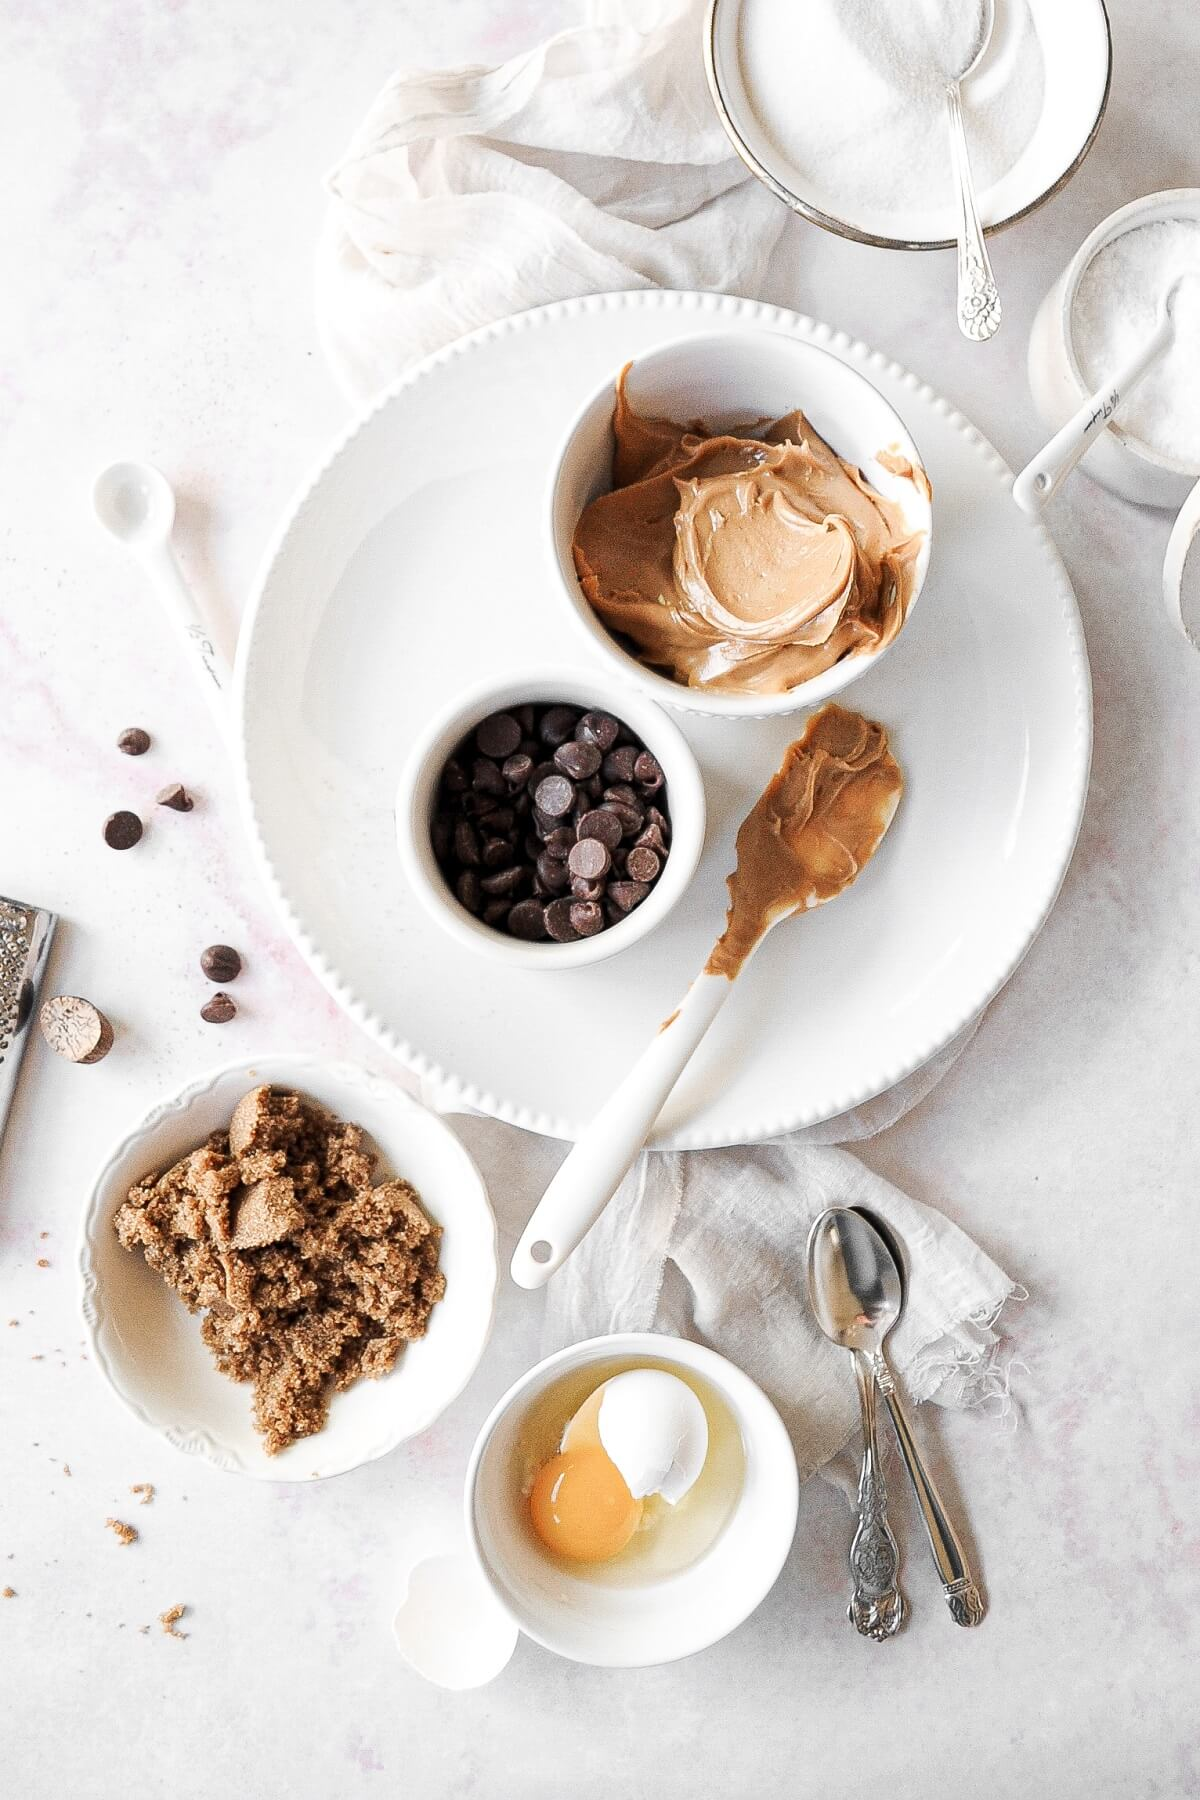 Ingredients for flourless peanut butter chocolate chip cookies arranged in prep bowls.